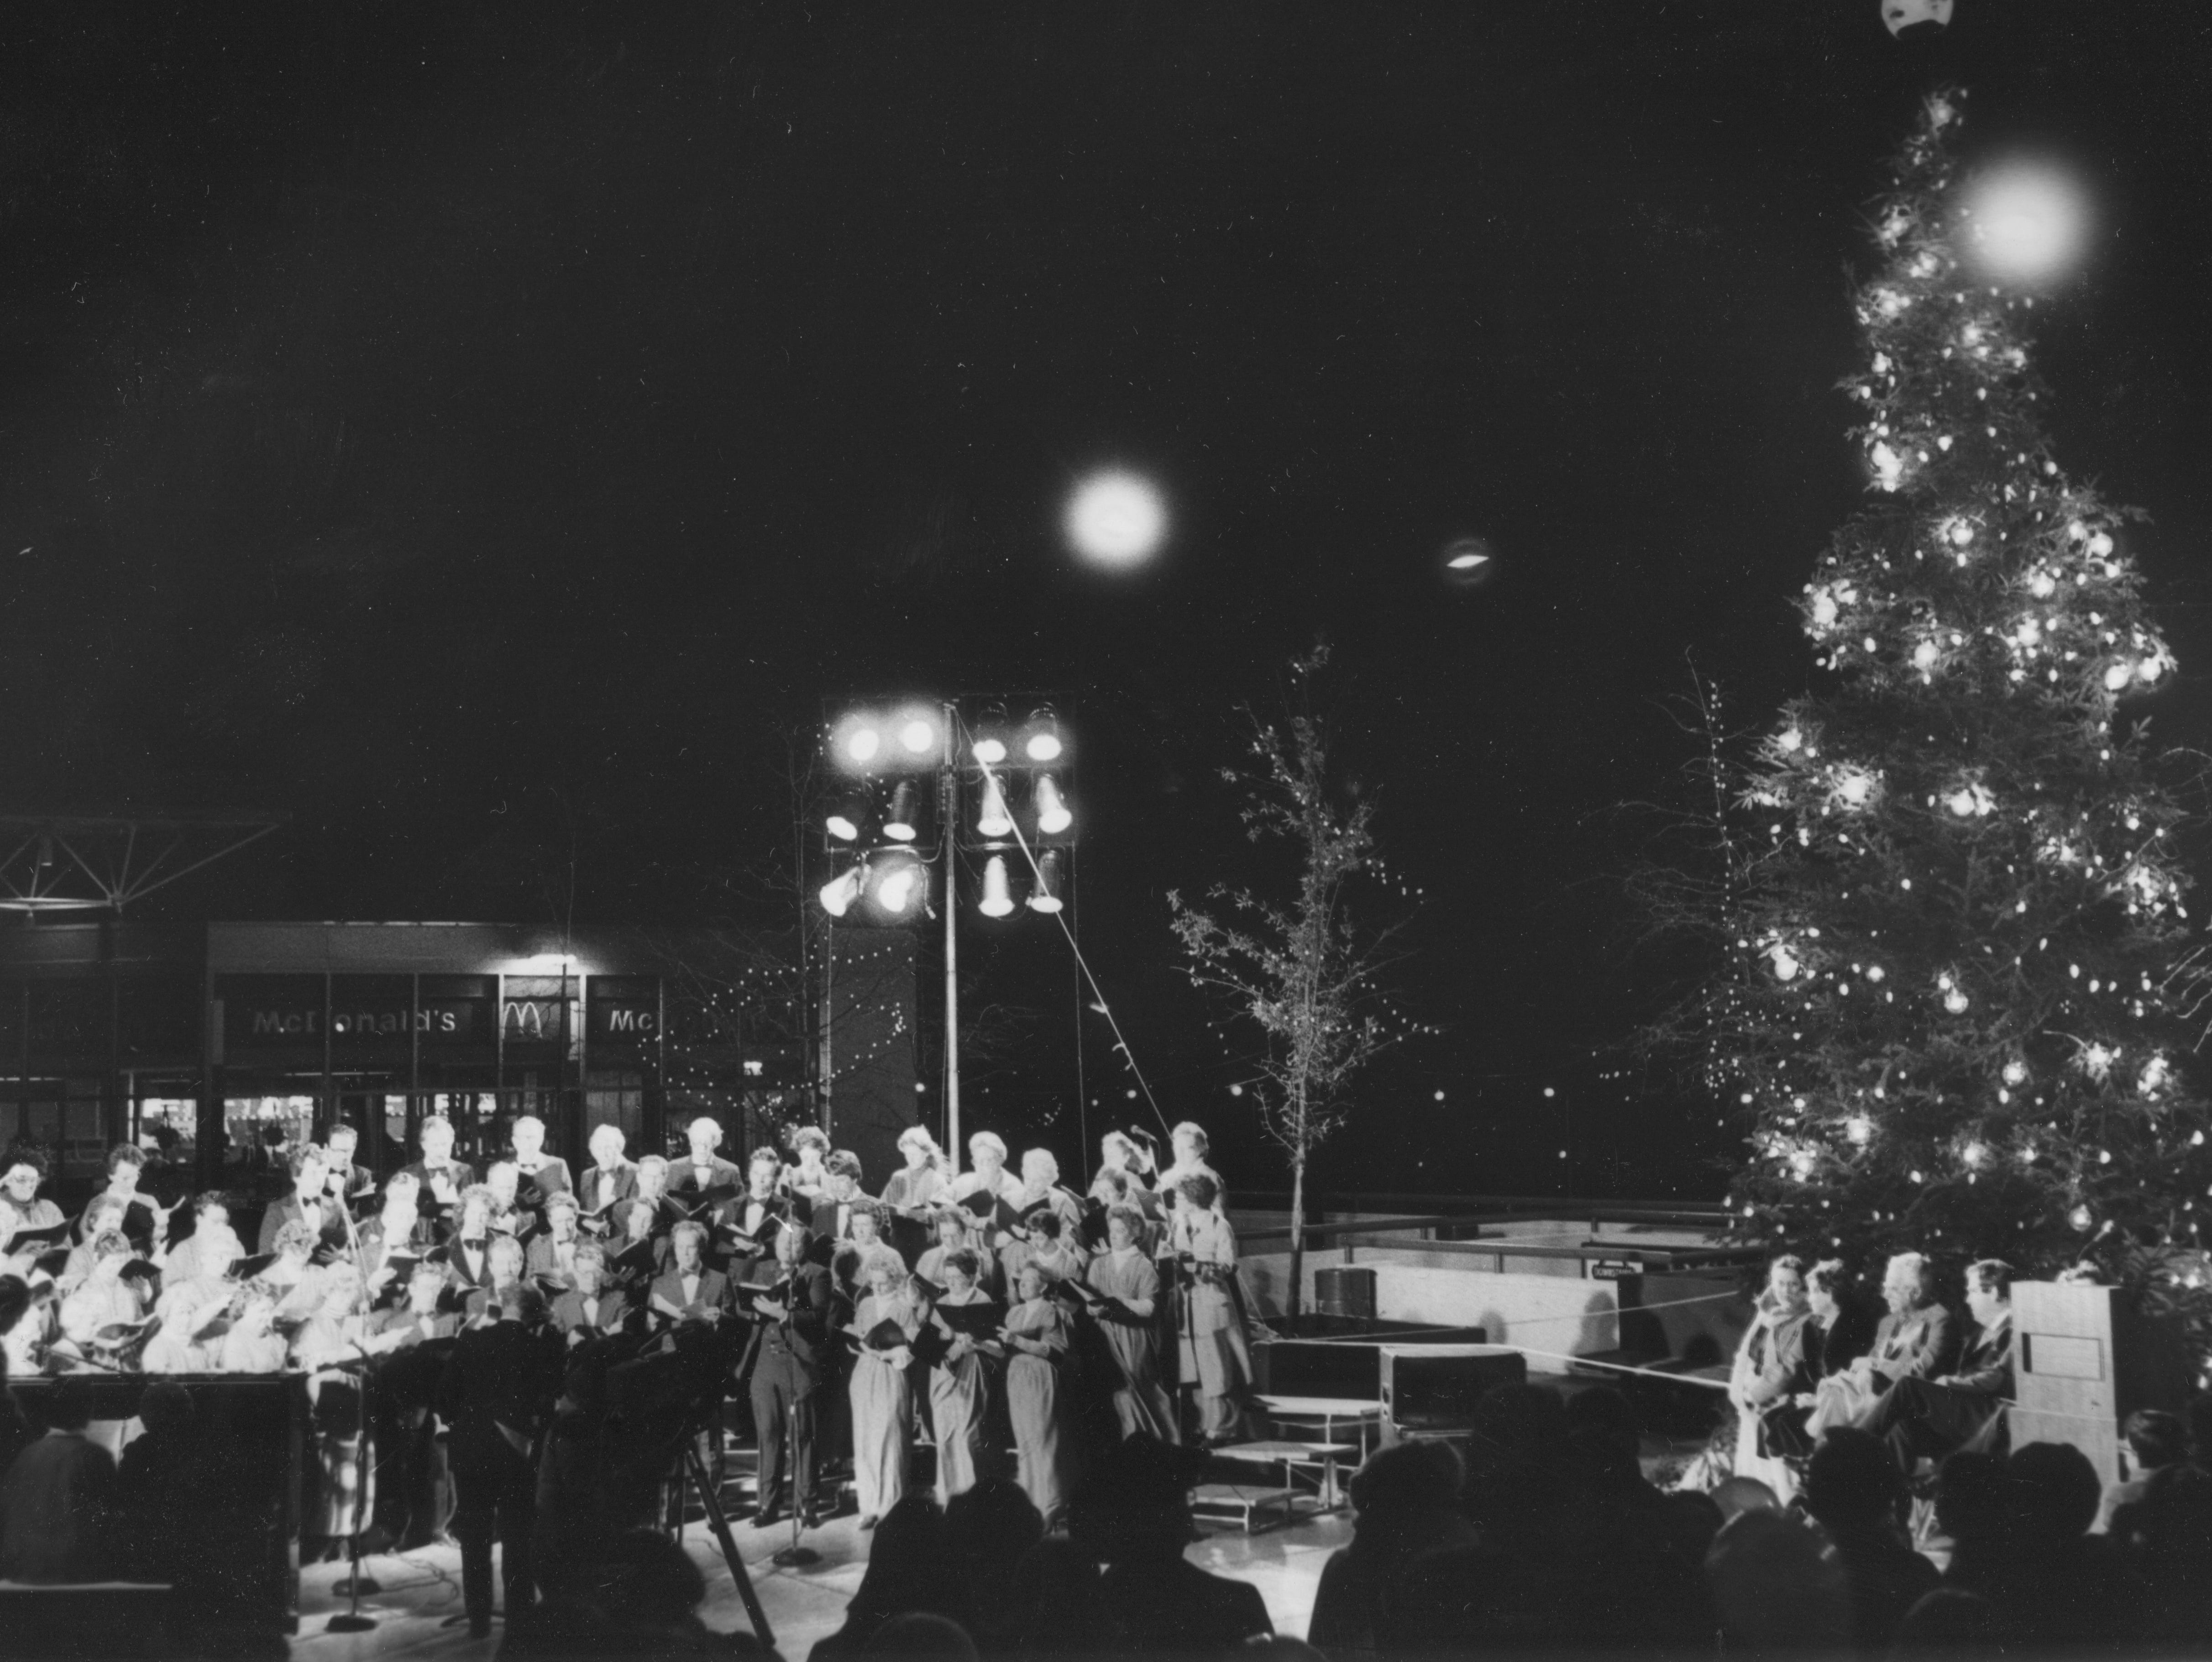 The Knoxville Choral Society performs during 'Christmas in the City' on Dec. 6, 1981, at Market Square.